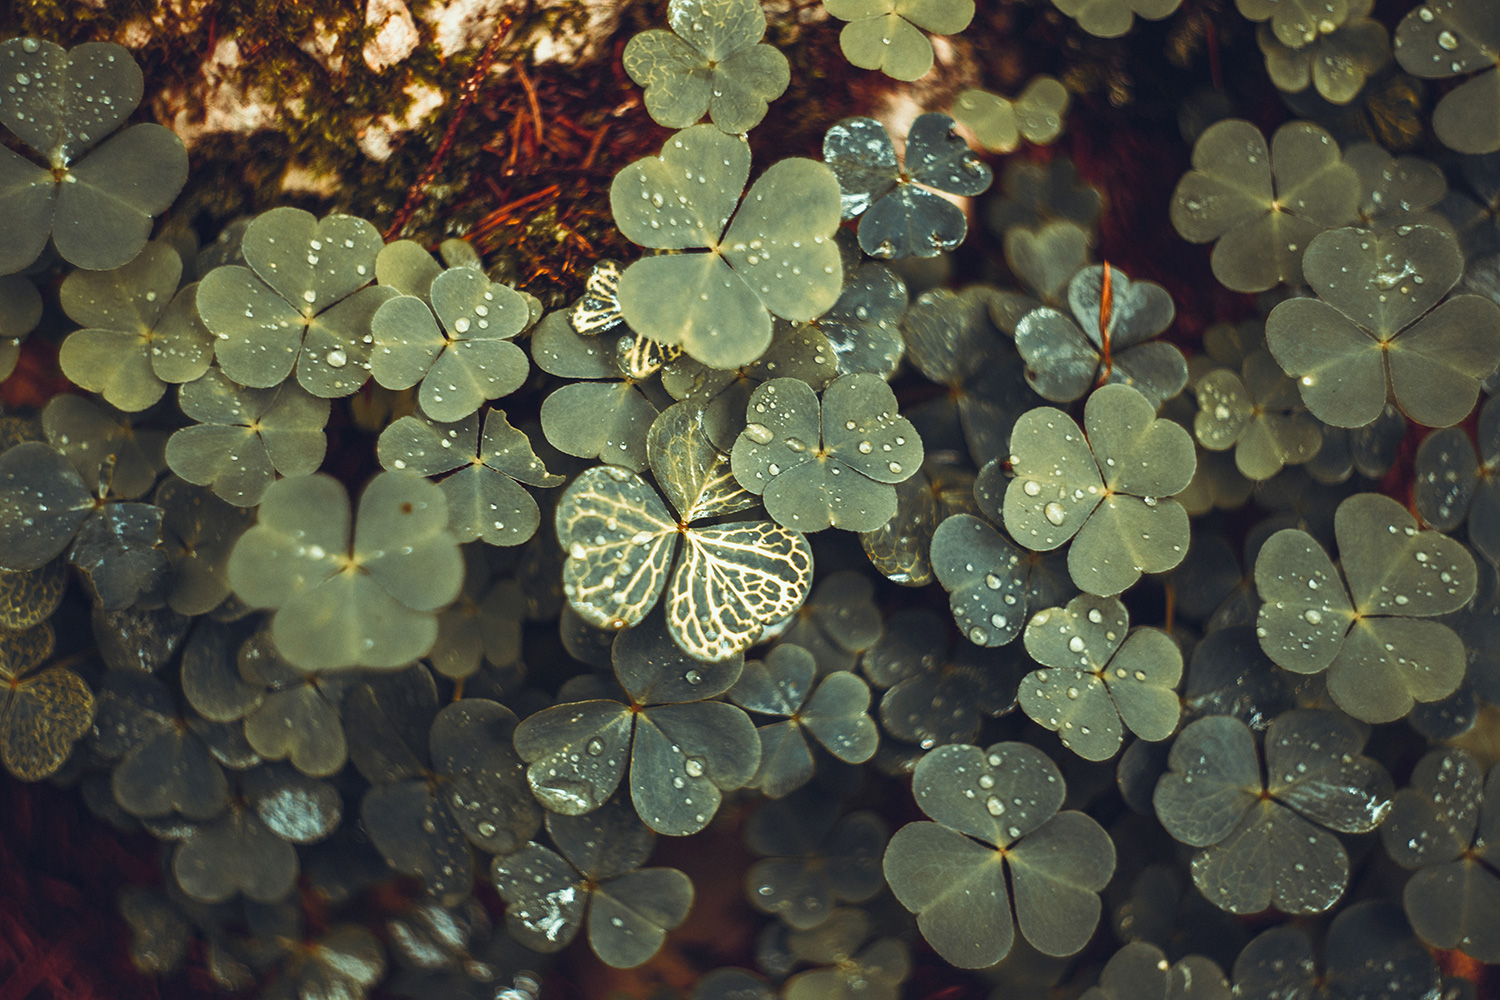 Shamrock, clover, nature, plant, rain, forest, wood, botanical, dewdrop